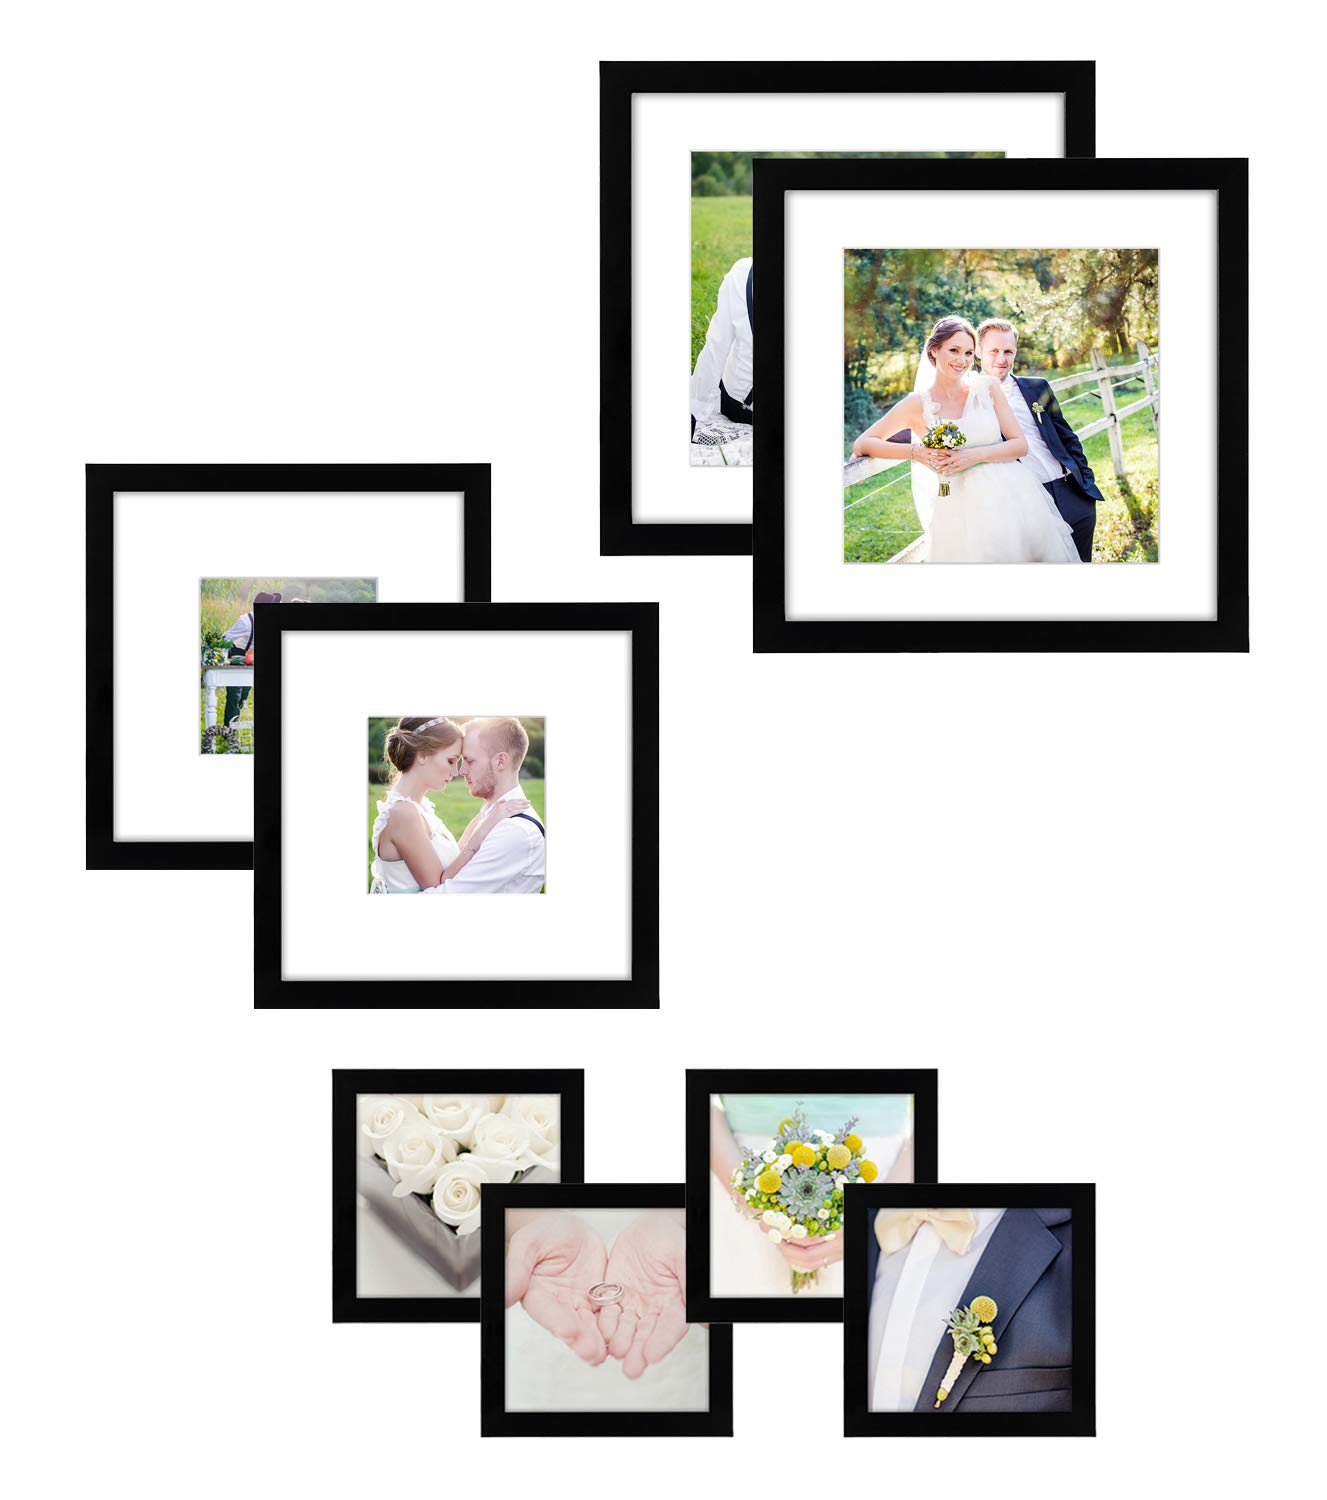 Americanflat 8 Pack Gallery Wall Set - Includes: (2) 11x11 Frames, (2) 8x8 Frames, and (4) 4x4 Frames, Black by Americanflat